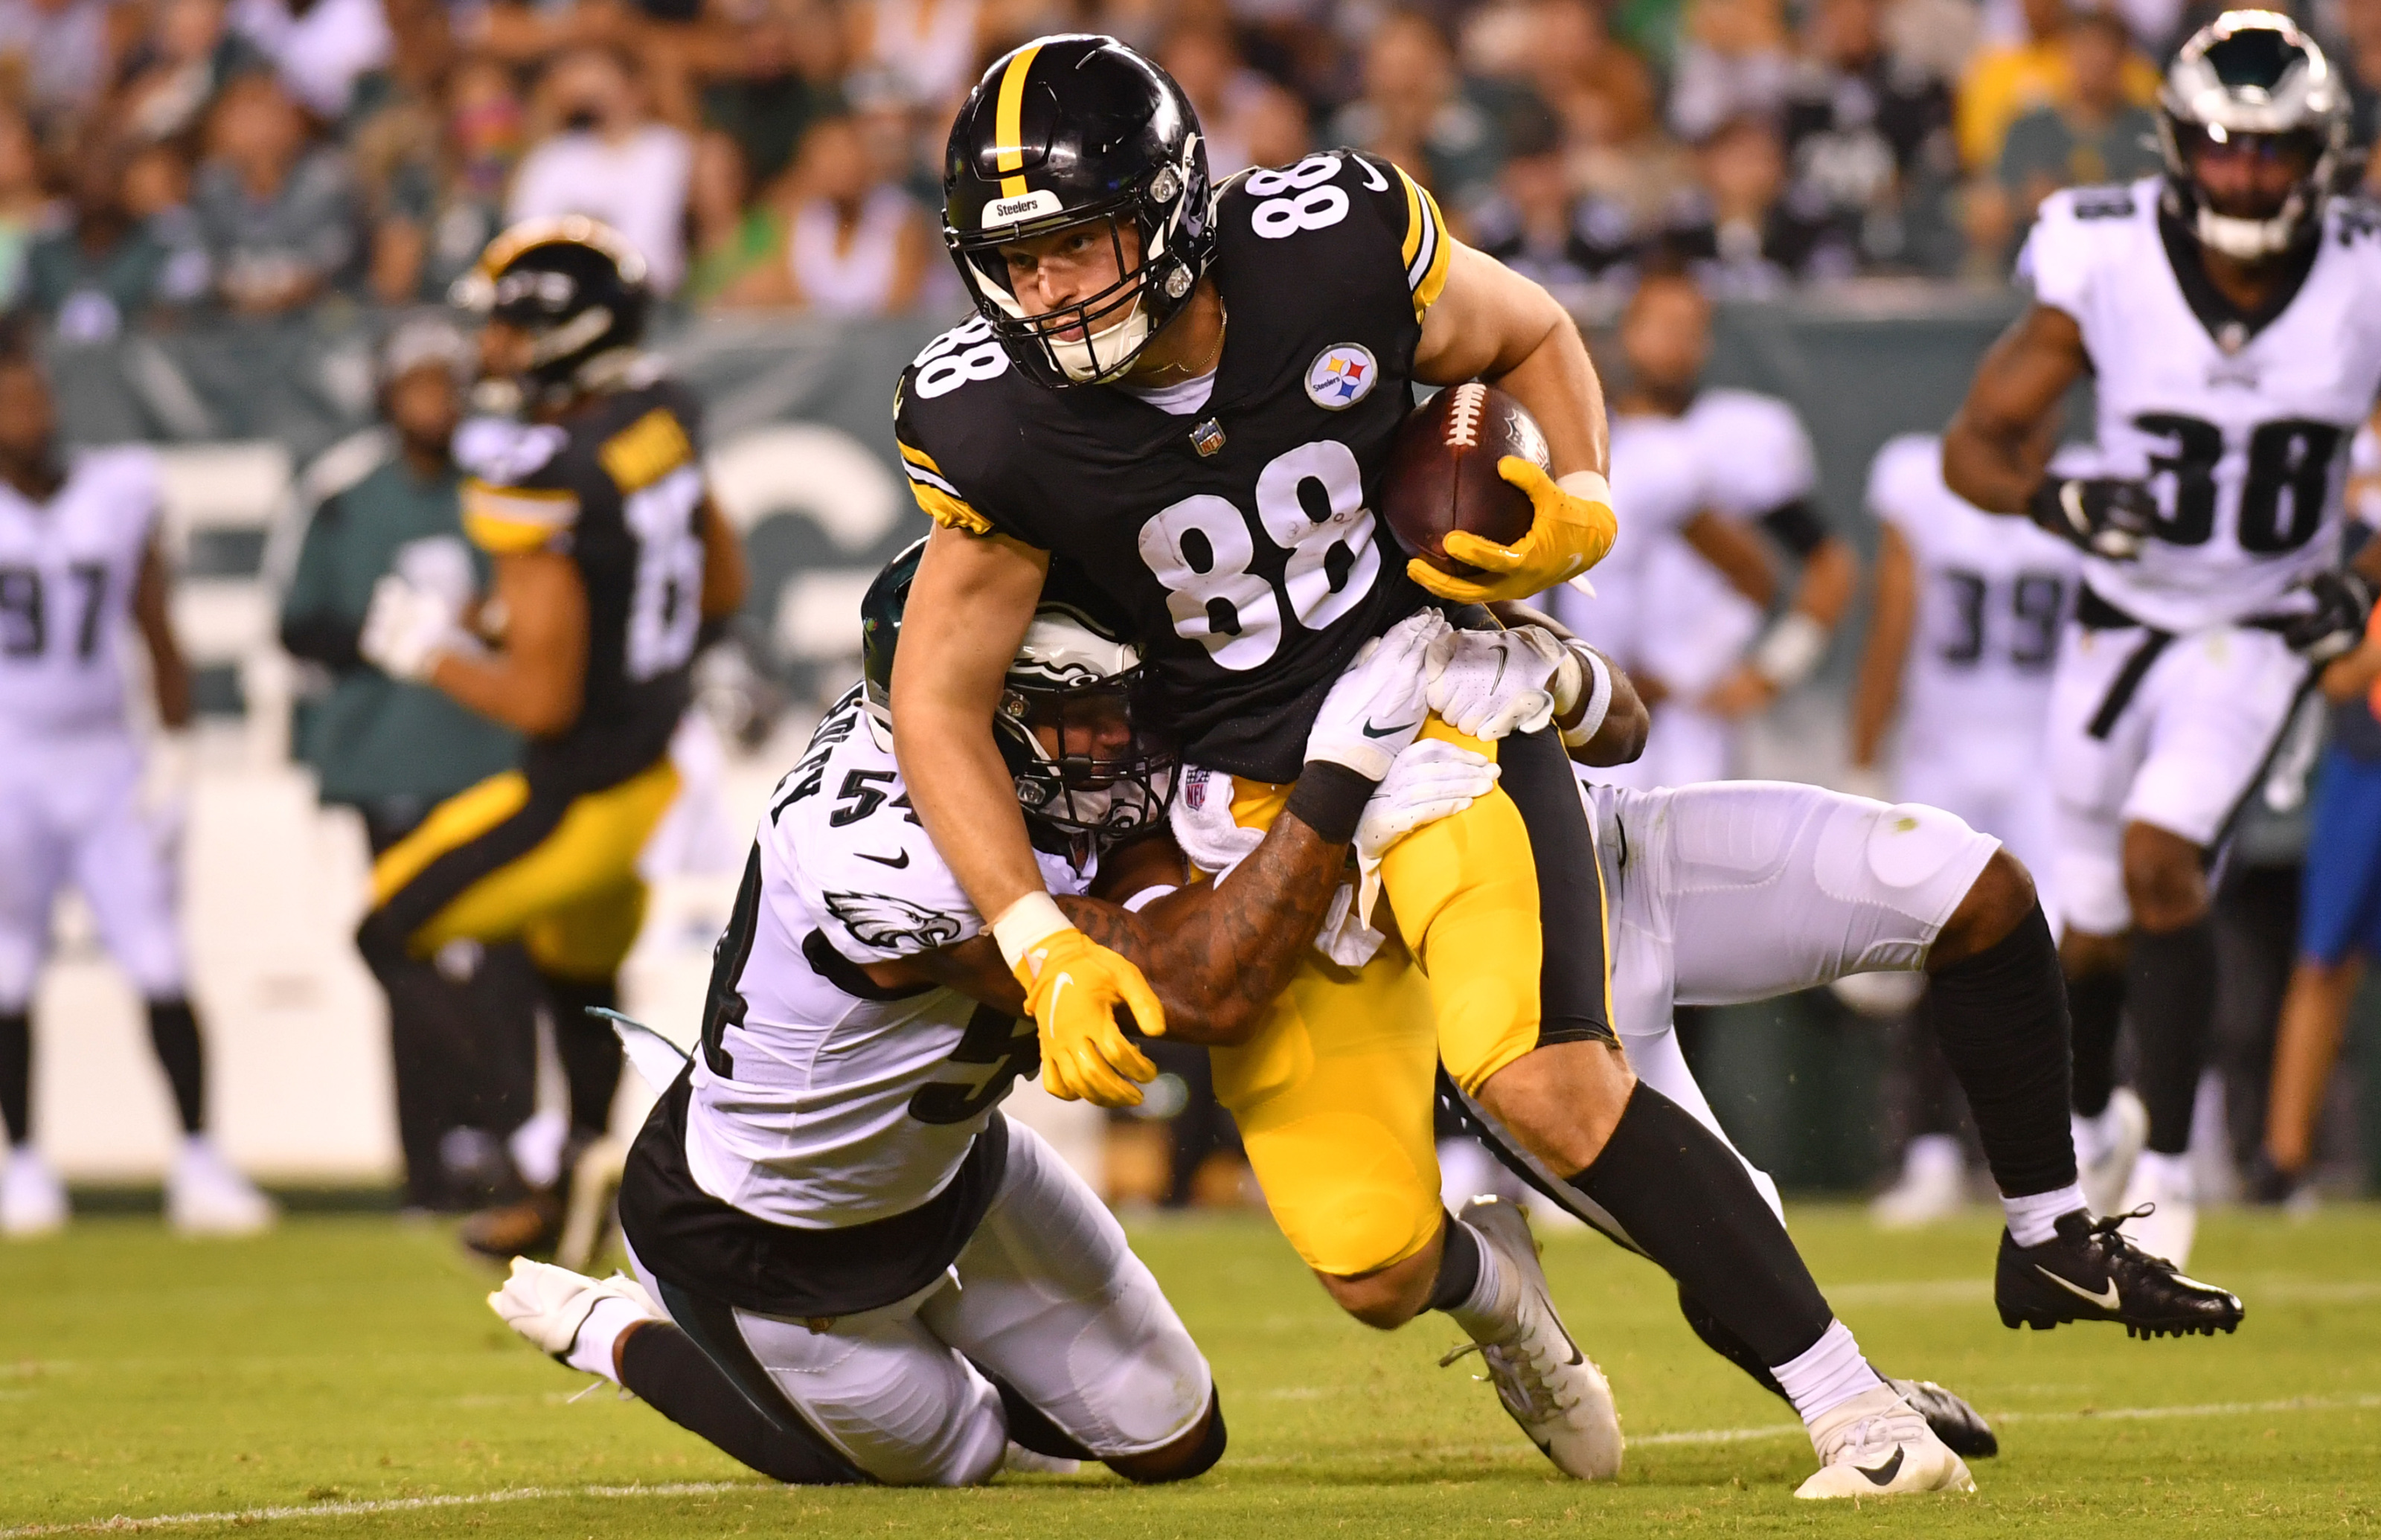 Former Steelers QB: 'Pat Freiermuth is key' for Pittsburgh in 2021